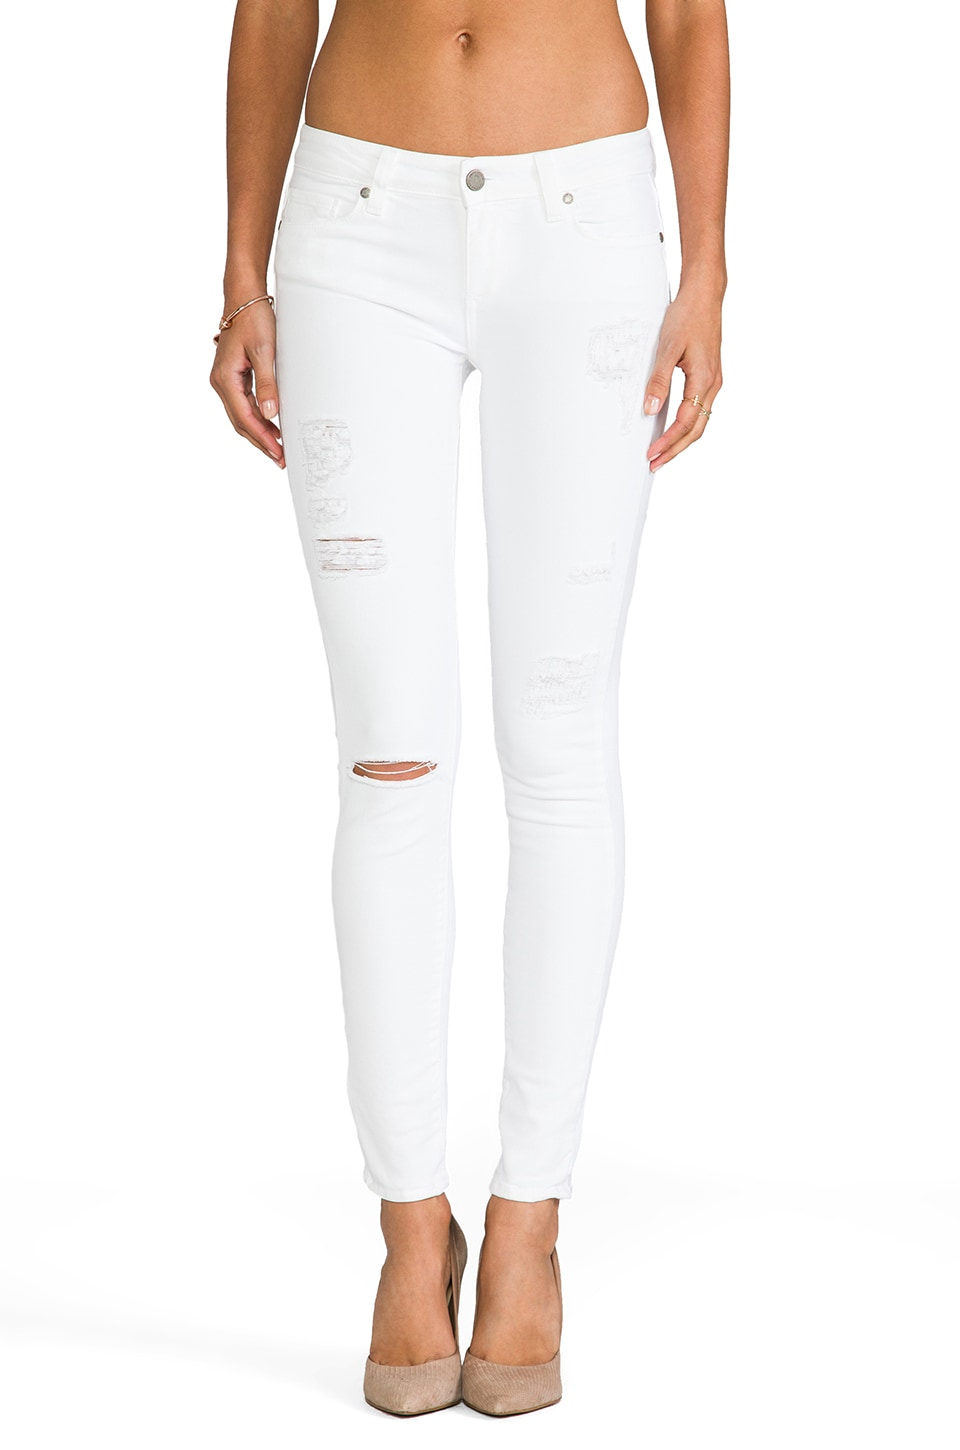 PAIGE Denim Verdugo Ultra Skinny in Optic White Destructed